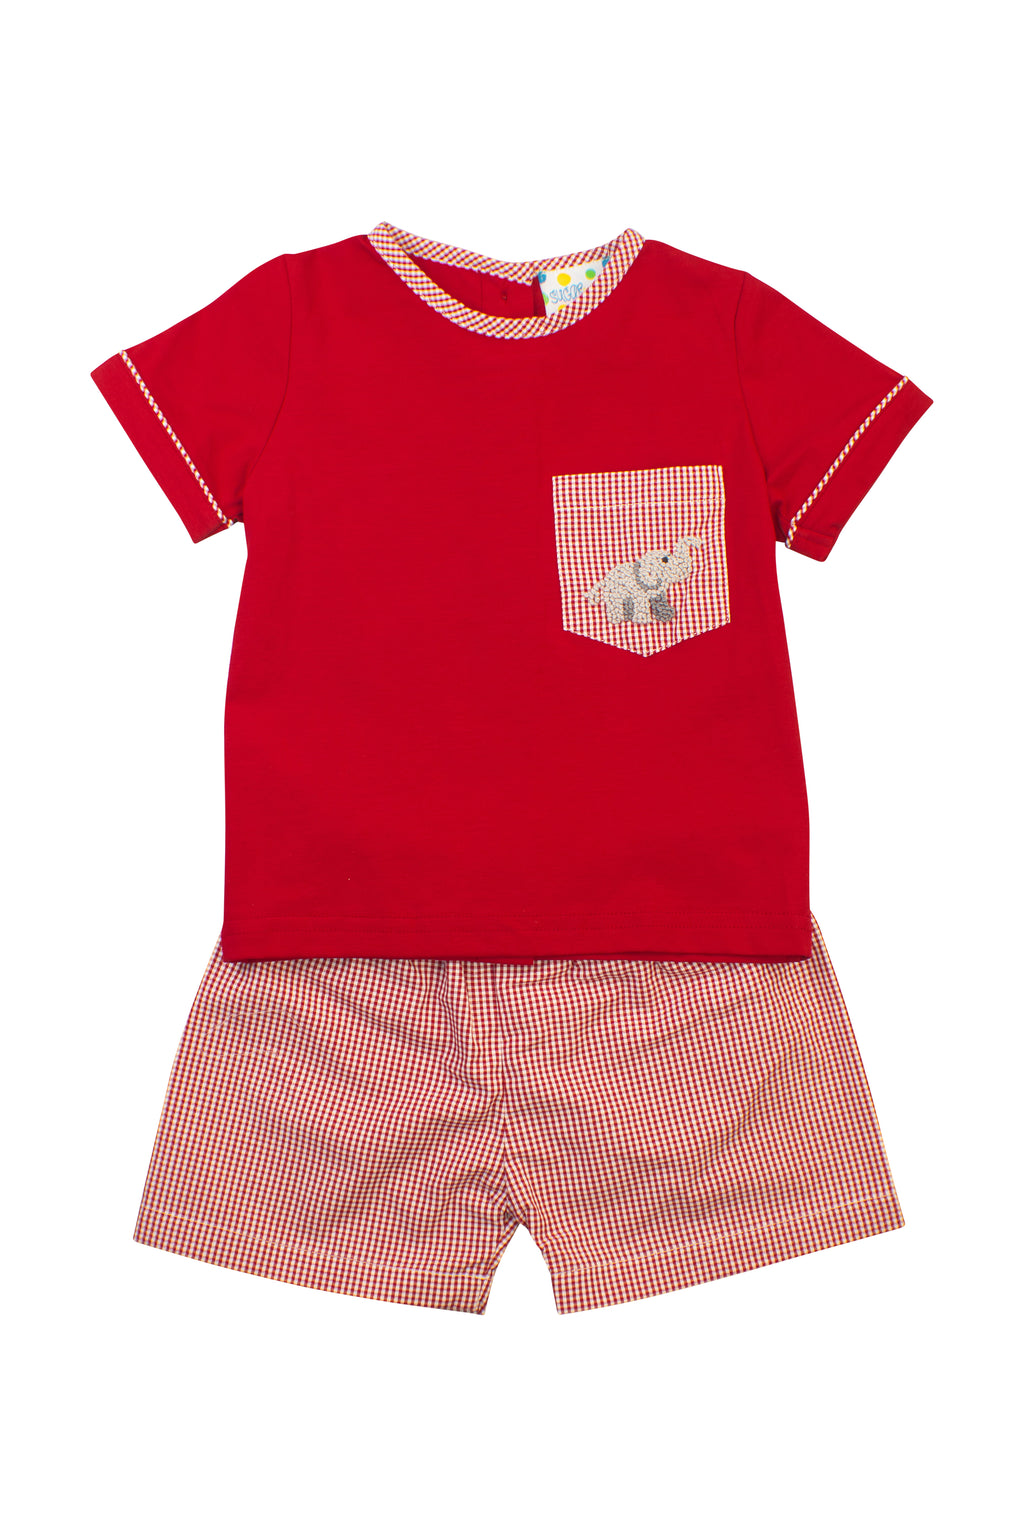 Boys French Knot Elephant Shorts Set